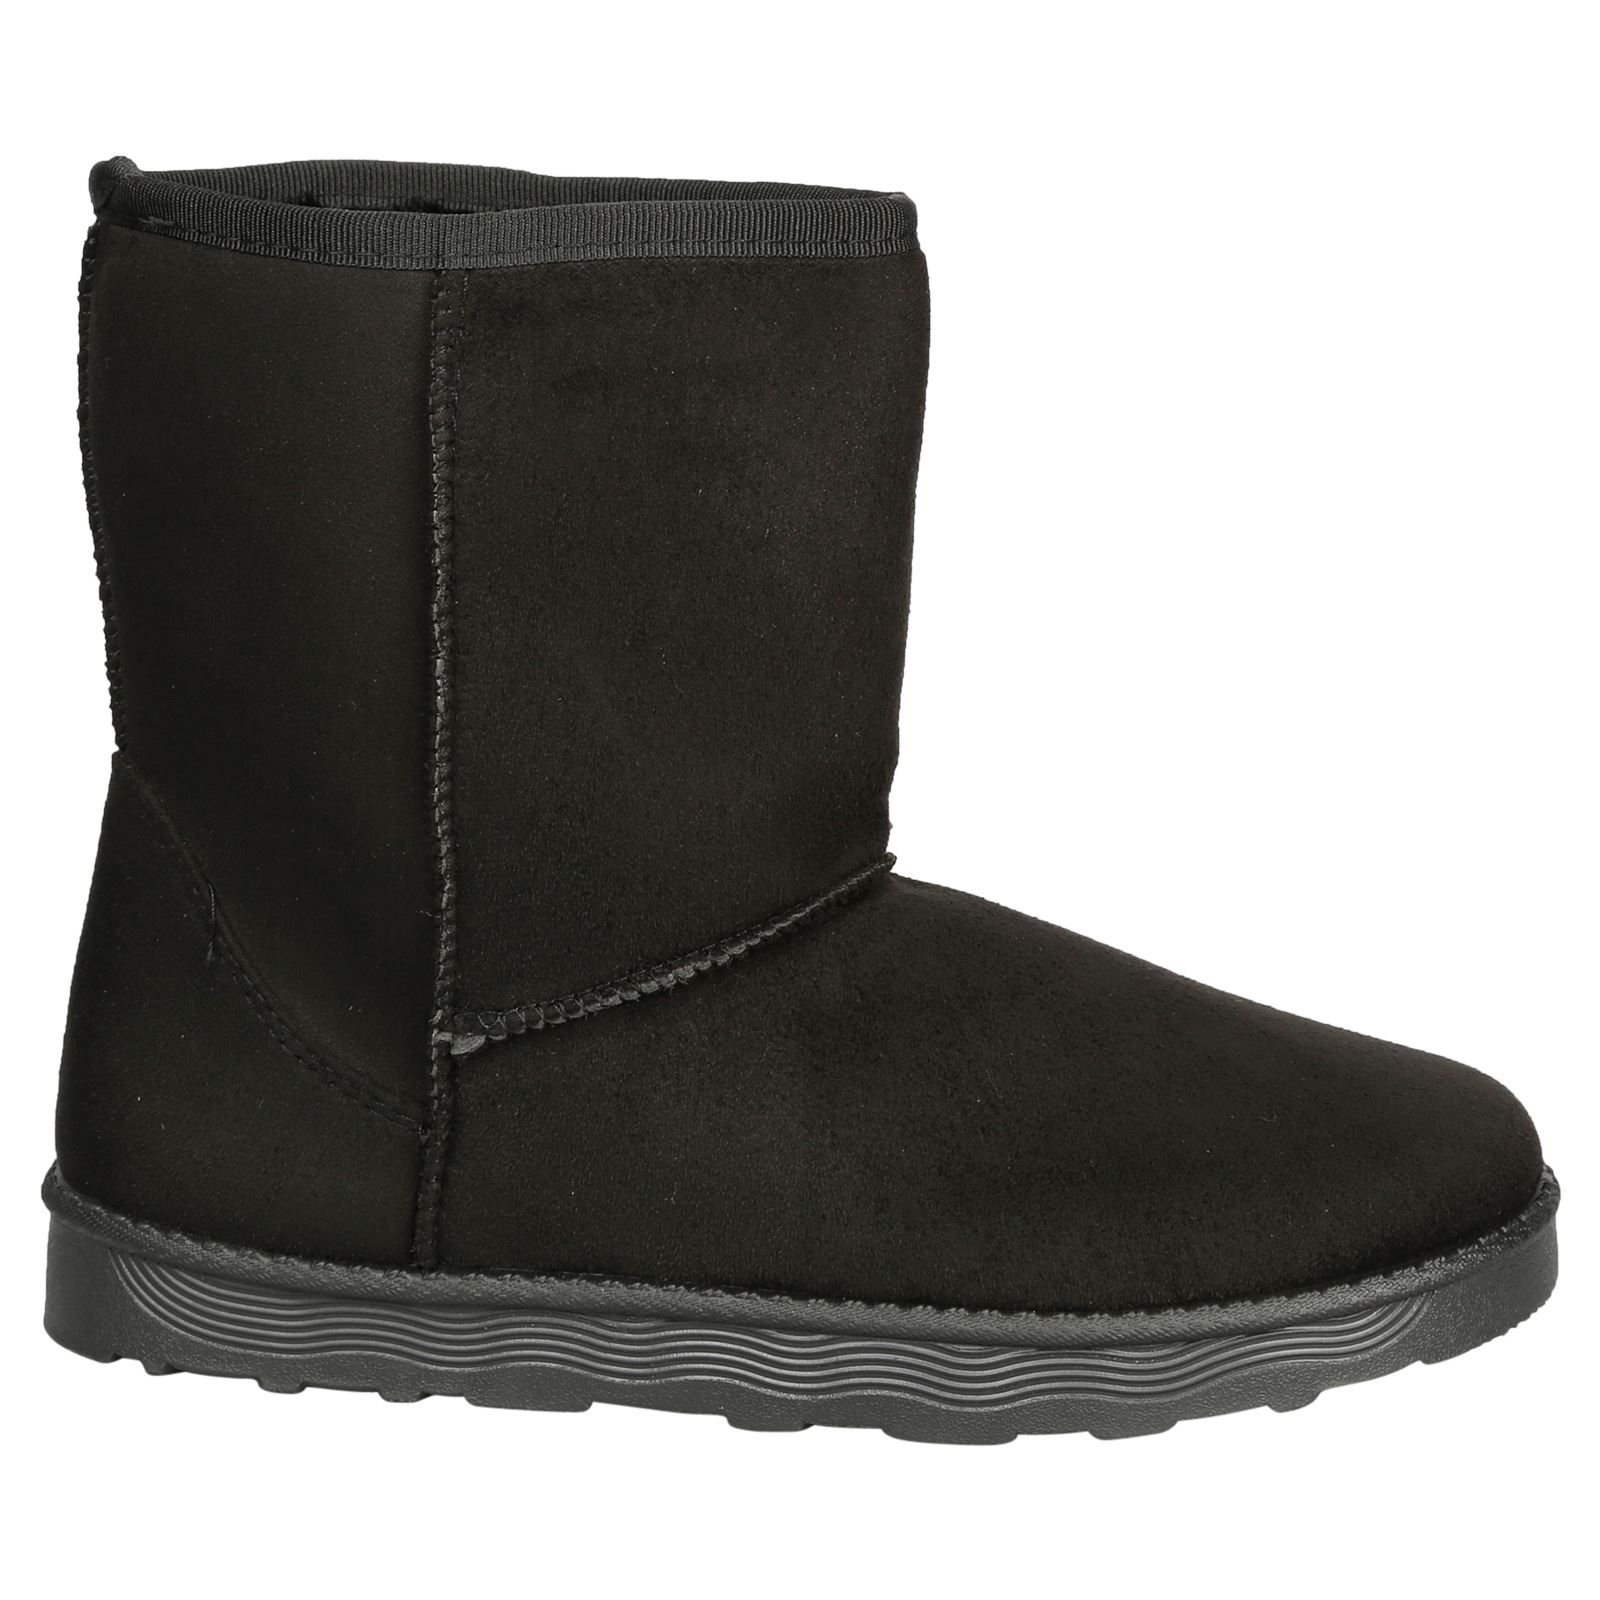 Paisleigh-Womens-Platfrom-Flat-Fur-Lined-Pull-On-Snug-Snow-Boots-Casual-Ladies thumbnail 3